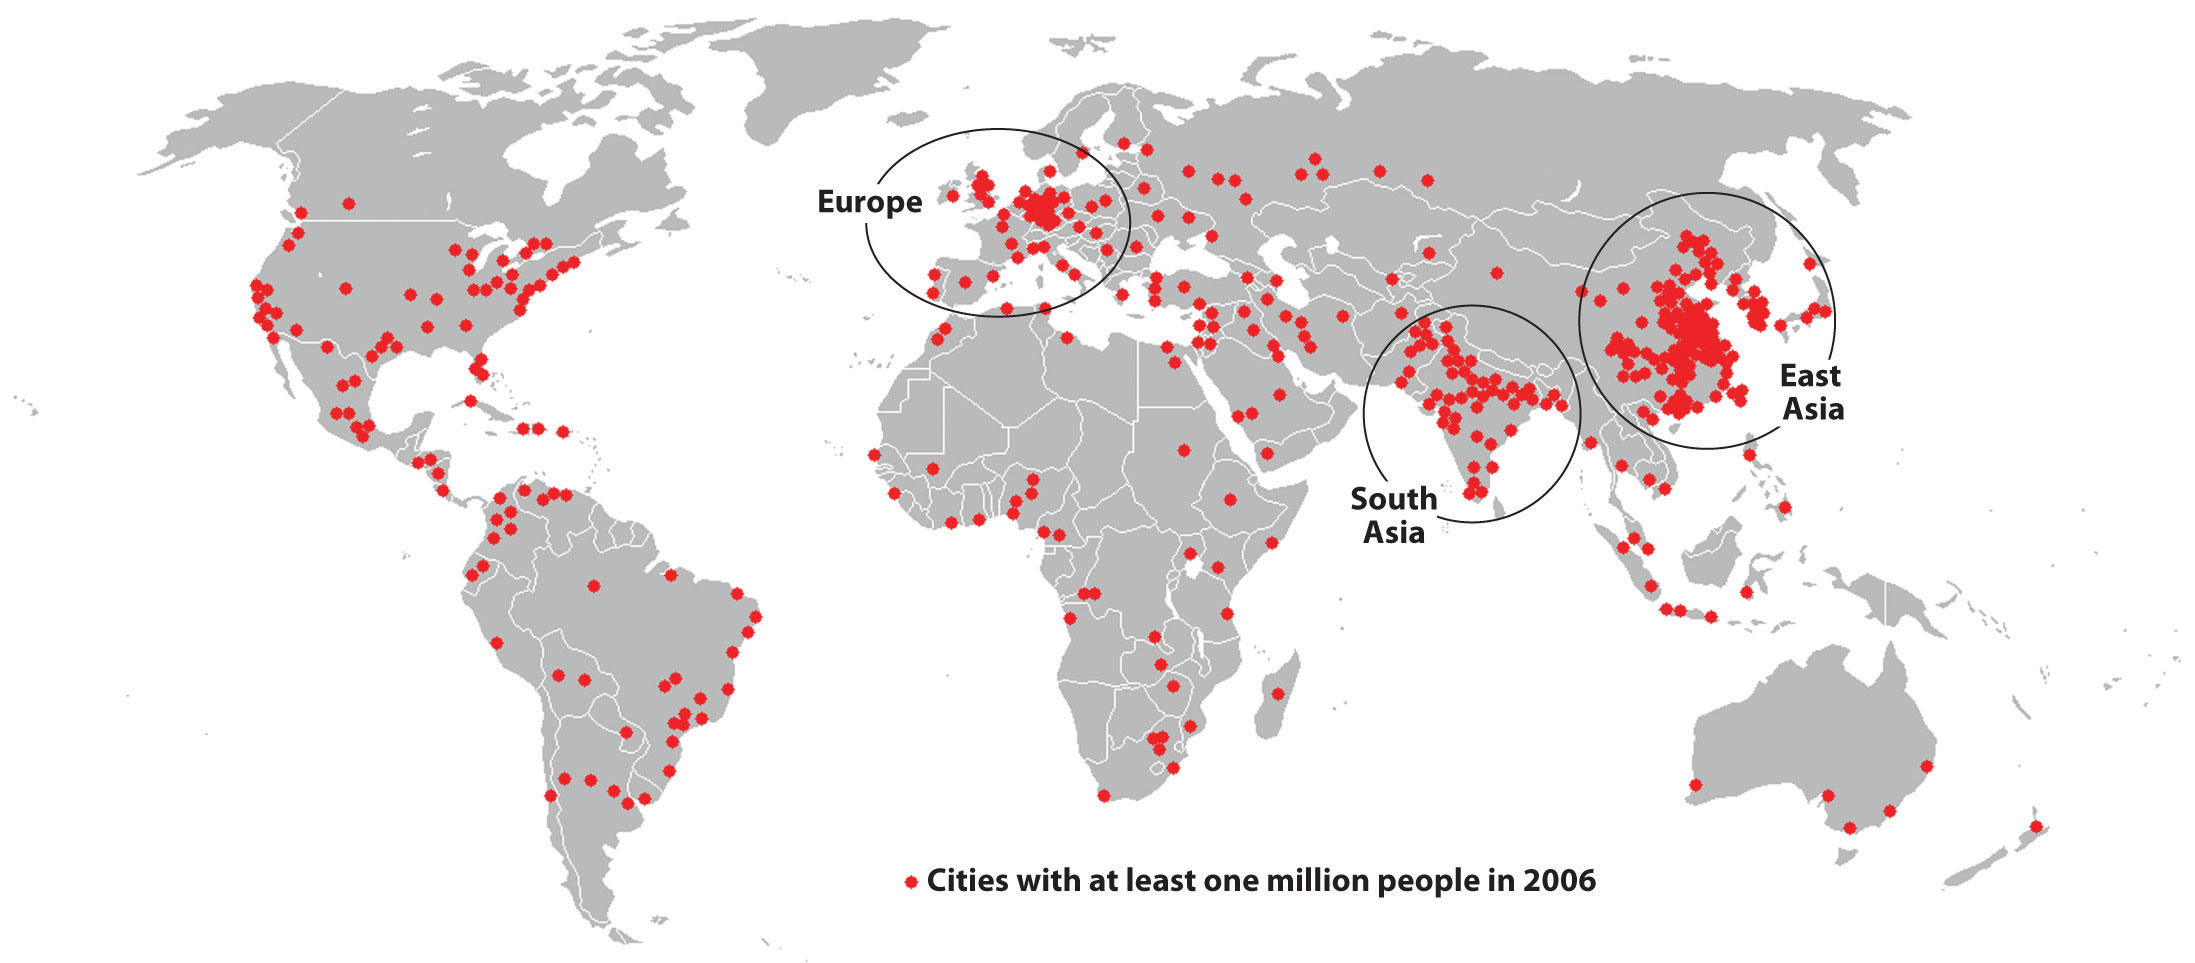 globalization overpopulation in the big cities This book has plenty of powerful images illustrating the problems generated by overpopulation and consumption, together with quotes from famous writers, scientists and ecologists to help understand and raise awareness about the destruction of natural environments.